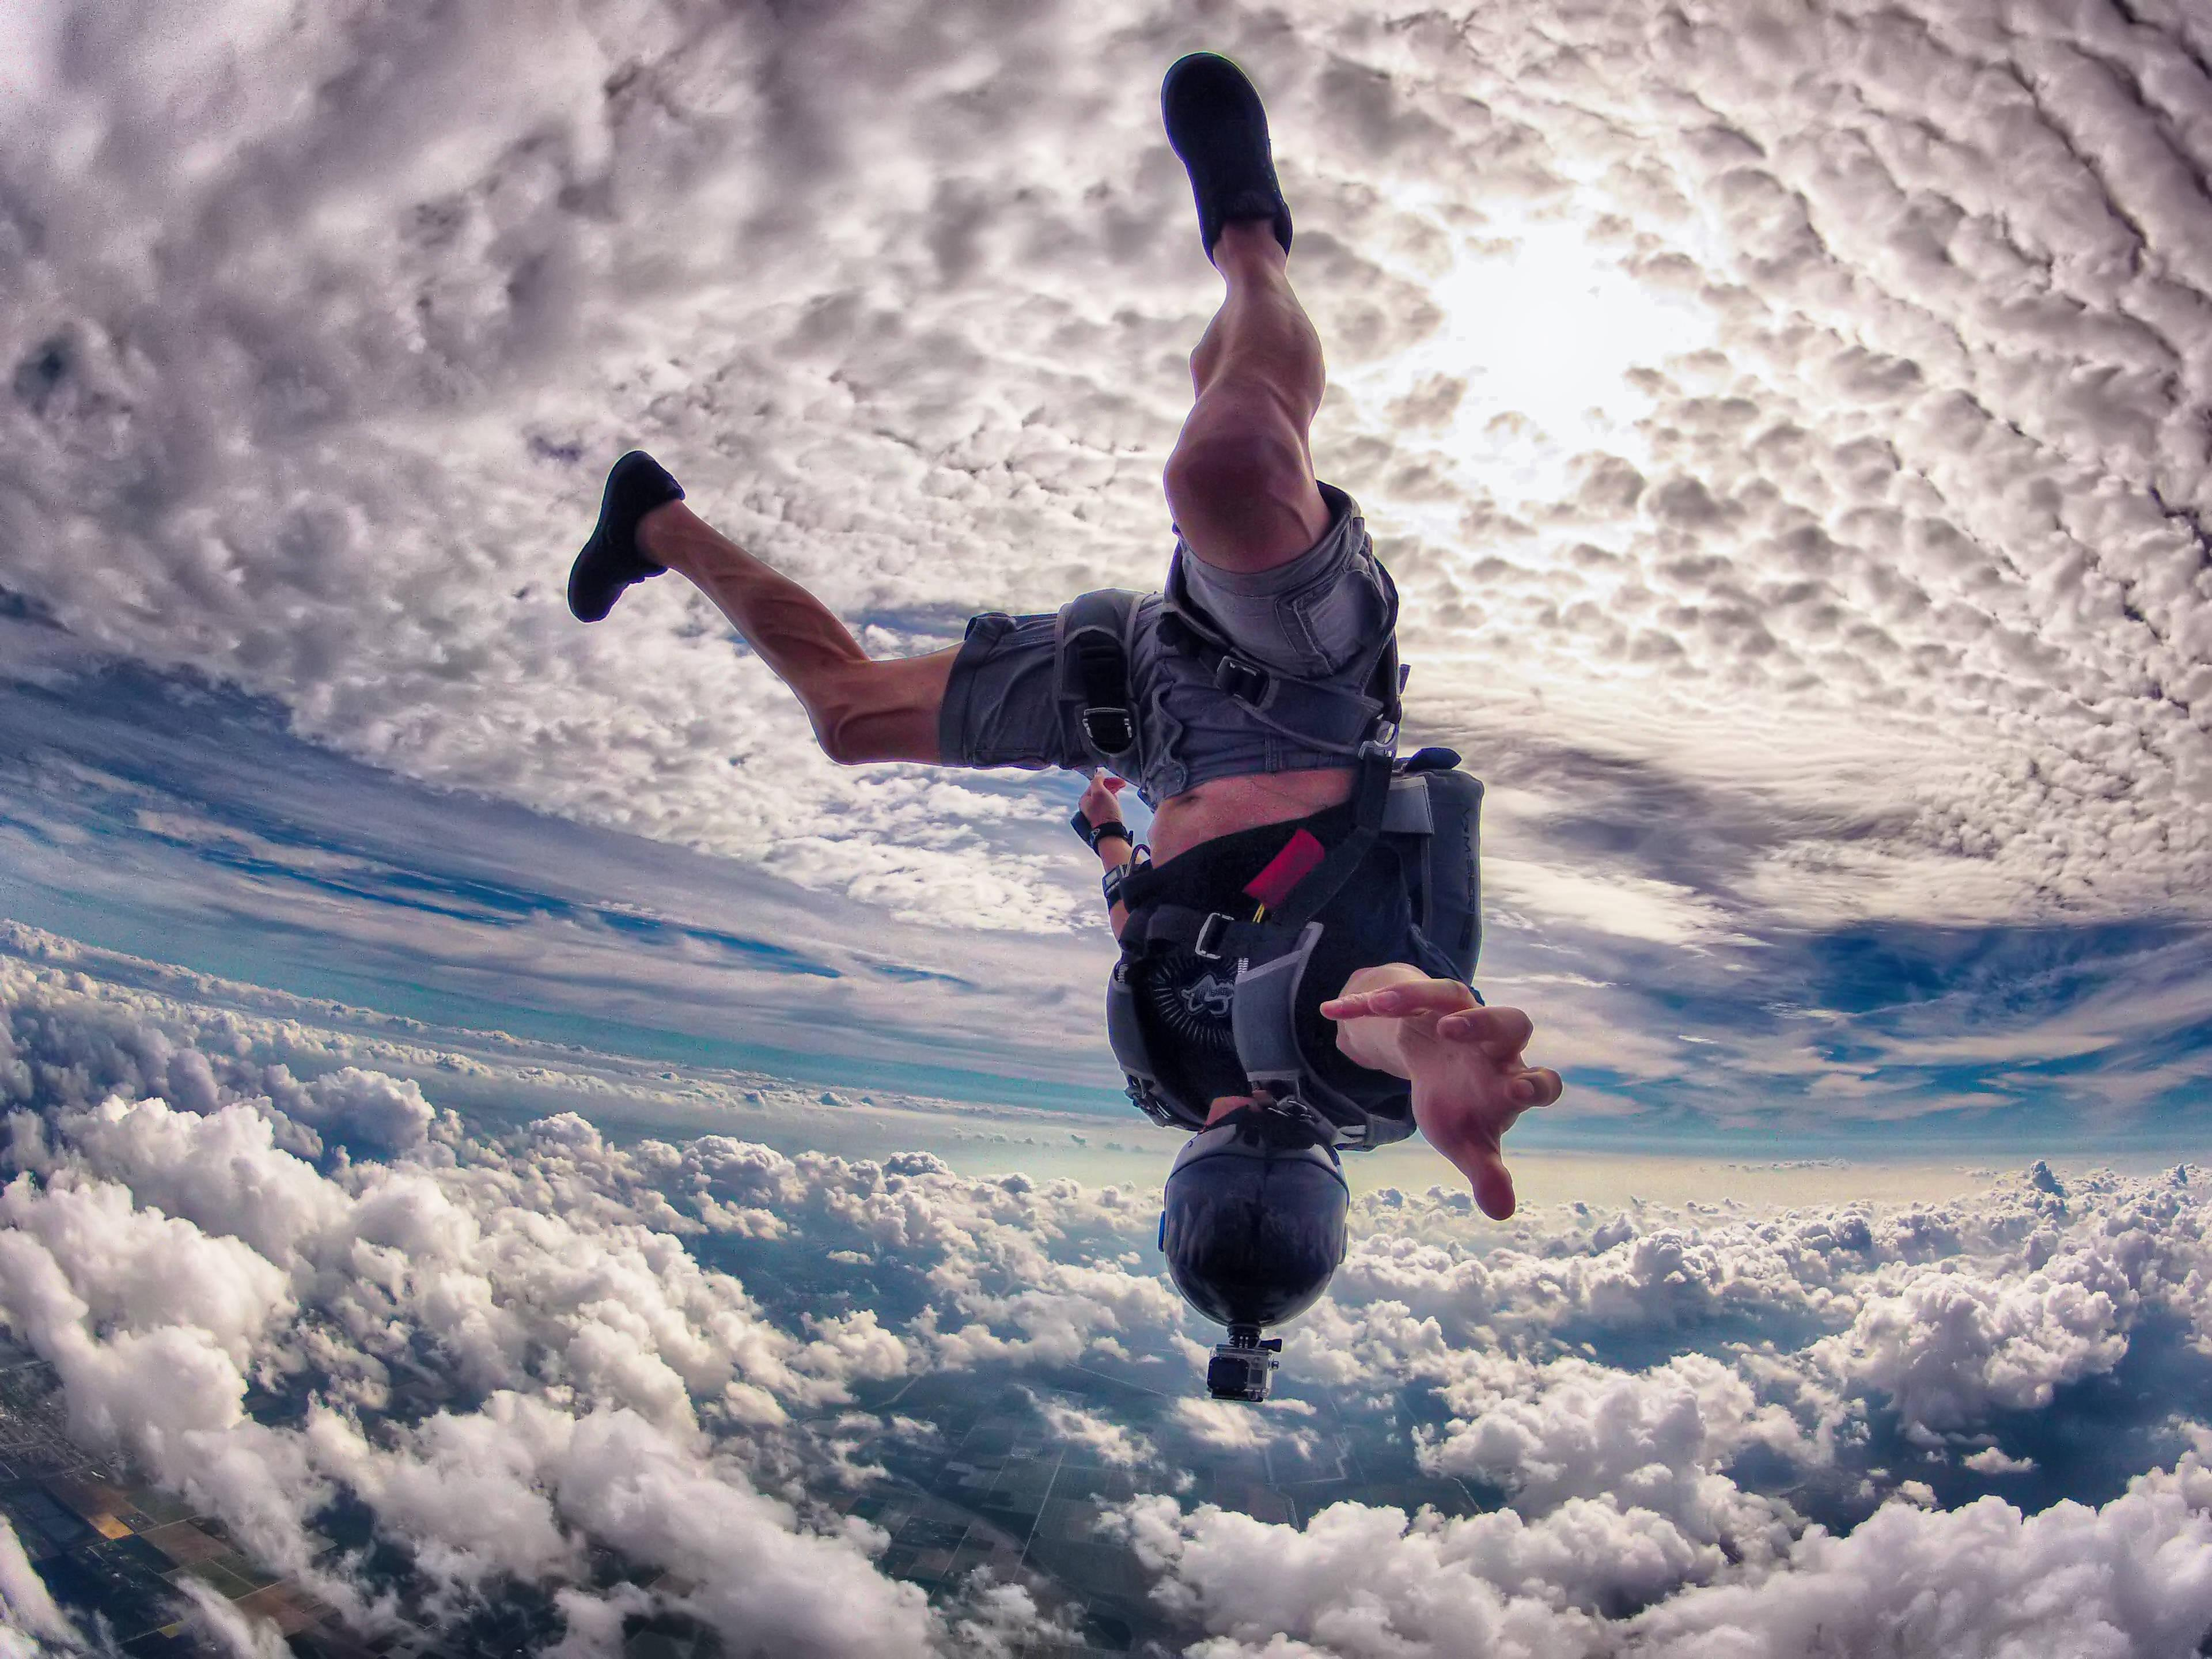 63 Skydiving HD Wallpapers